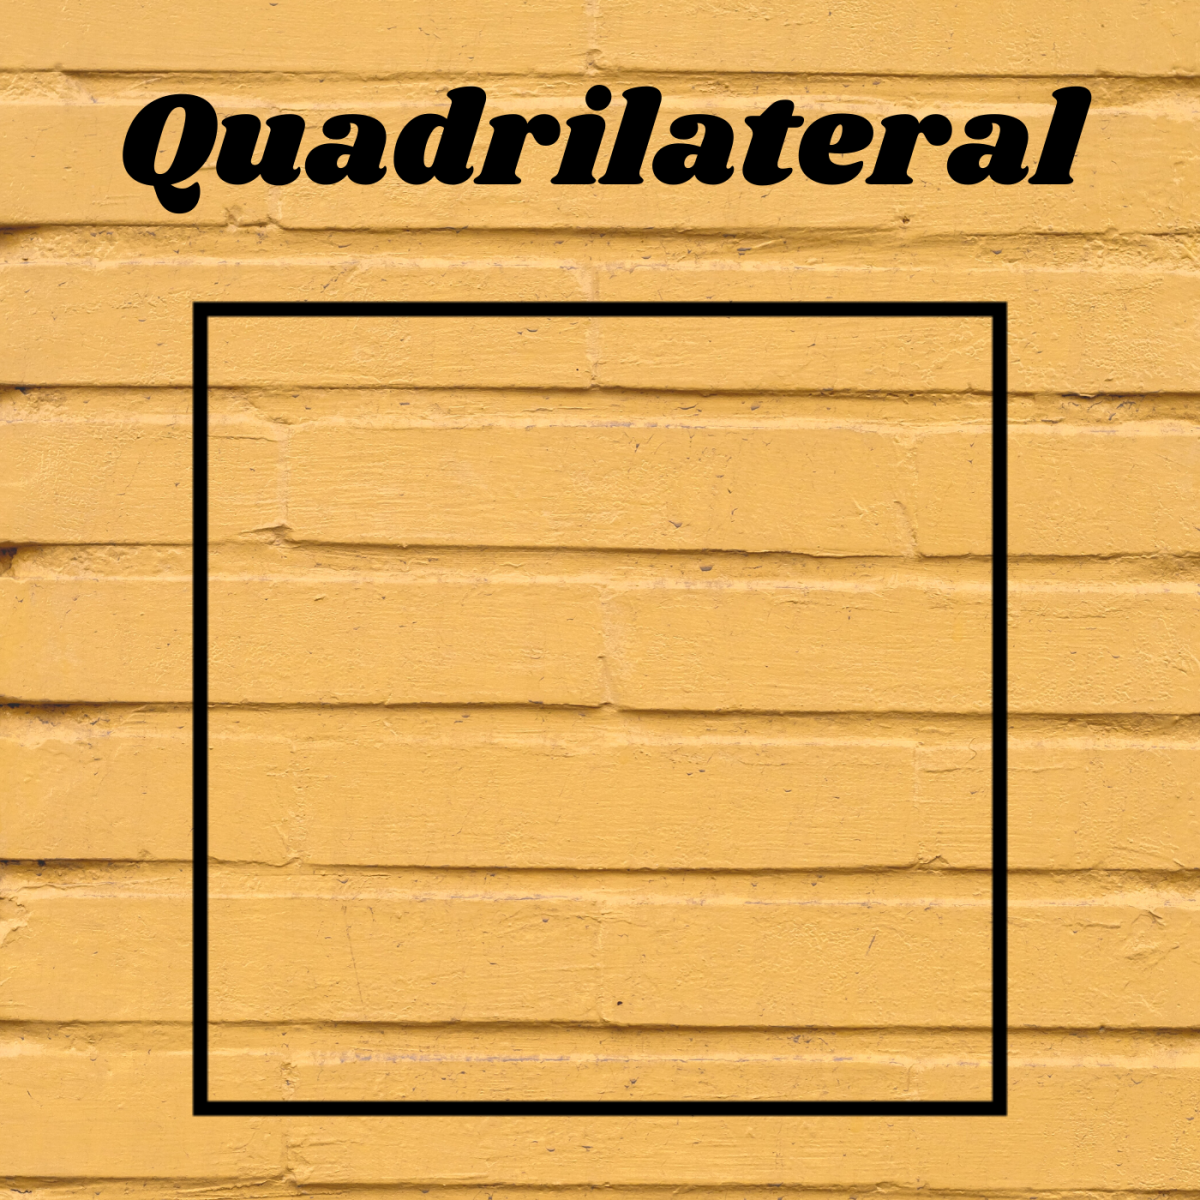 Quadrilaterals have four sides.